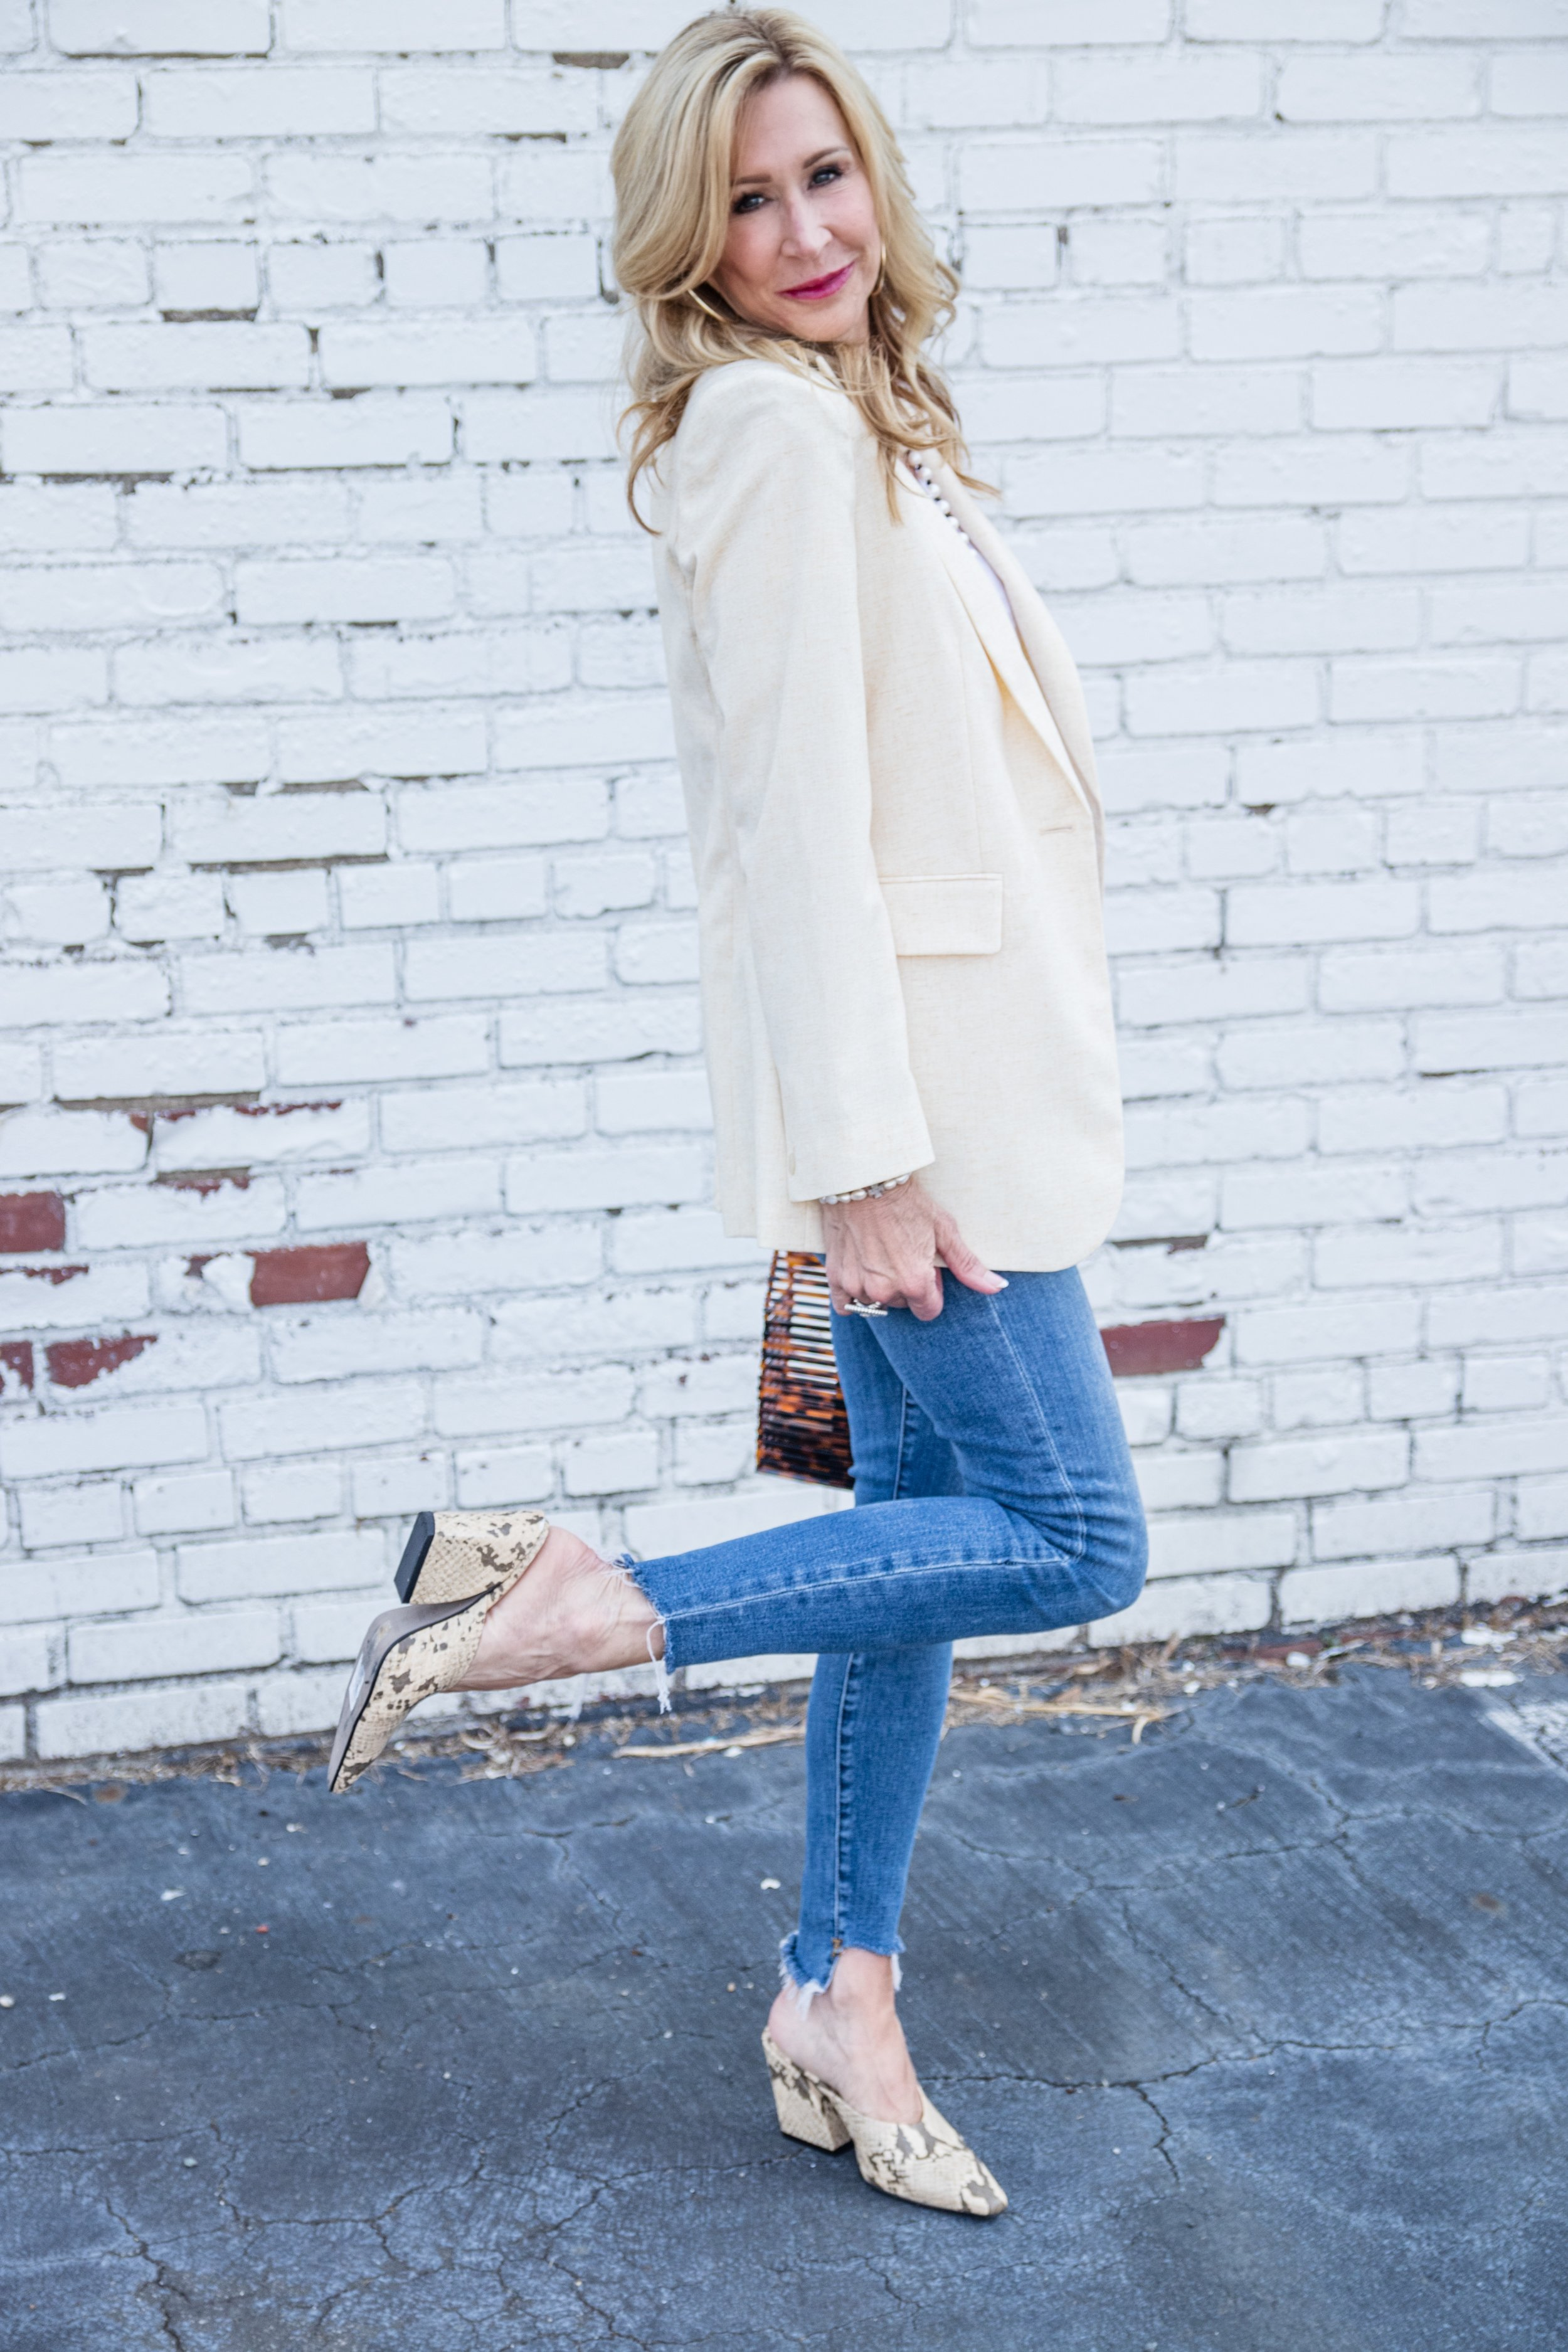 Jeans and a blazer - Crazy Blonde Style